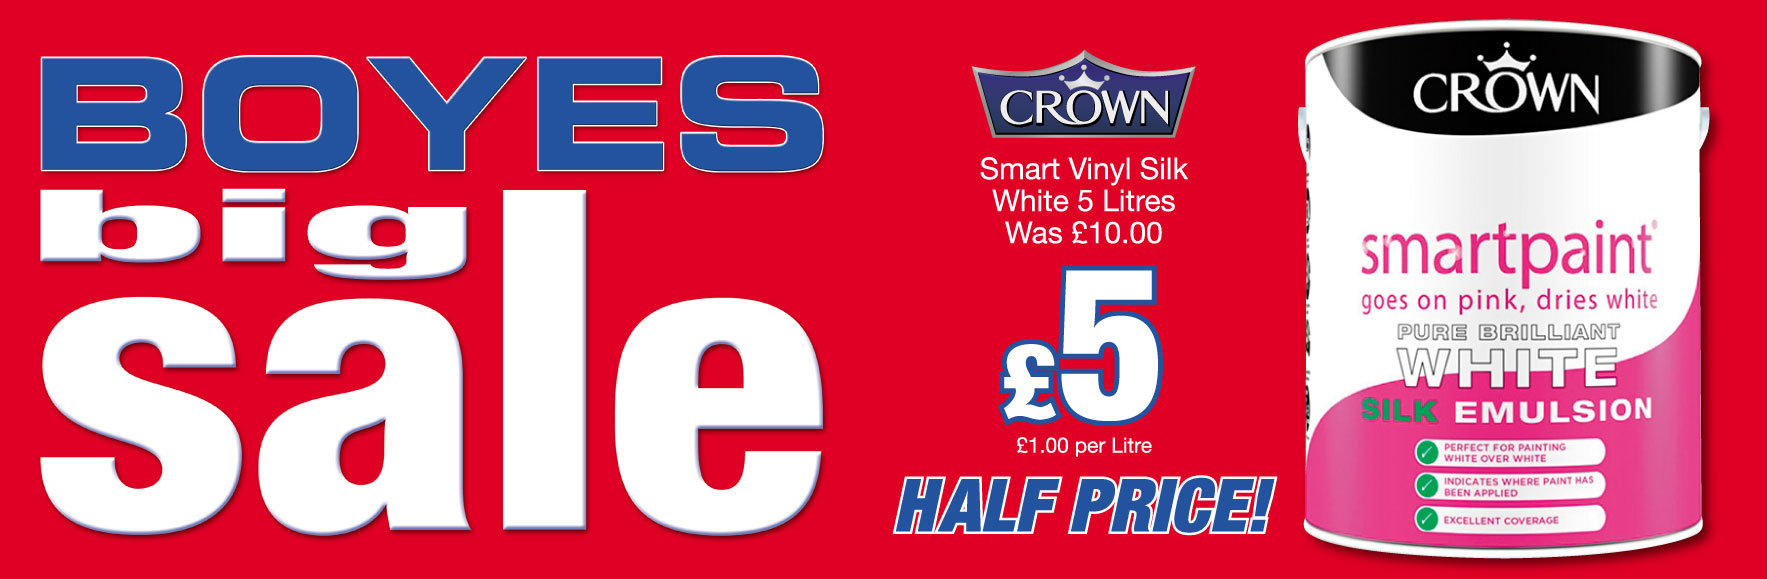 'Crown' Smart Vinyl Silk. White. 5 Litres. Was £10.00. Now £5!